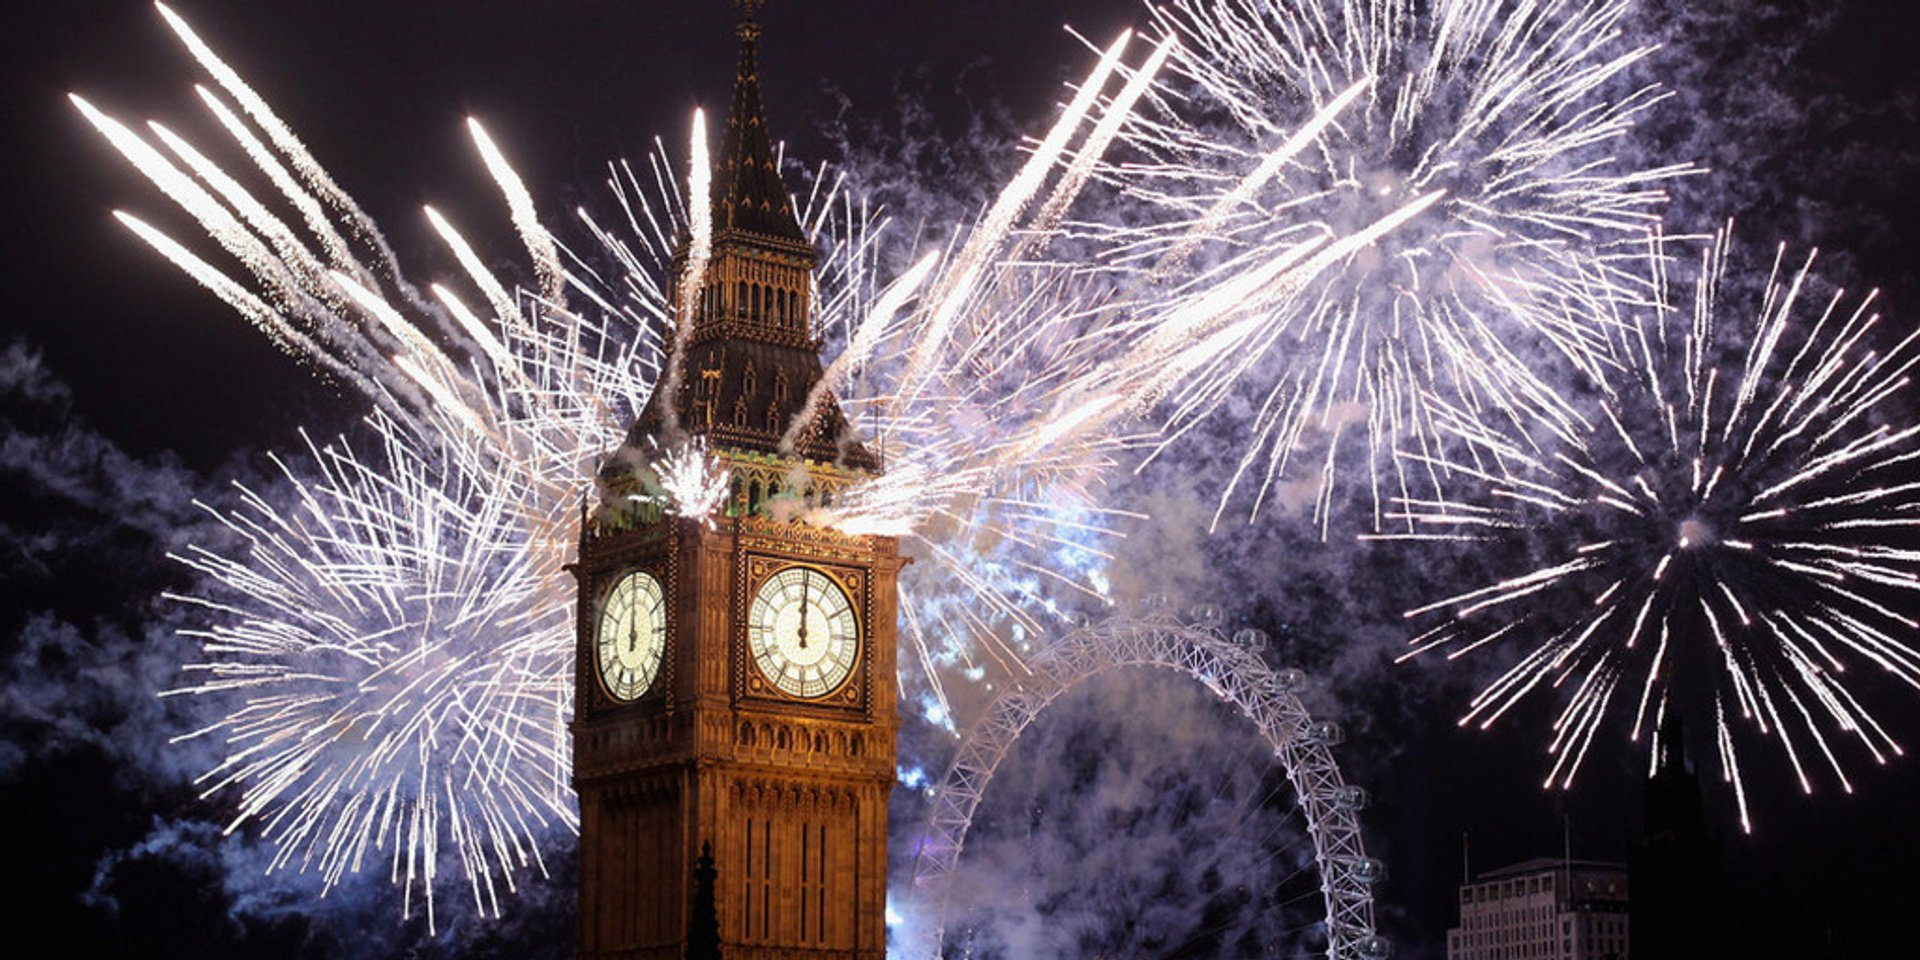 New Year's Eve in England 2019 - Best Time